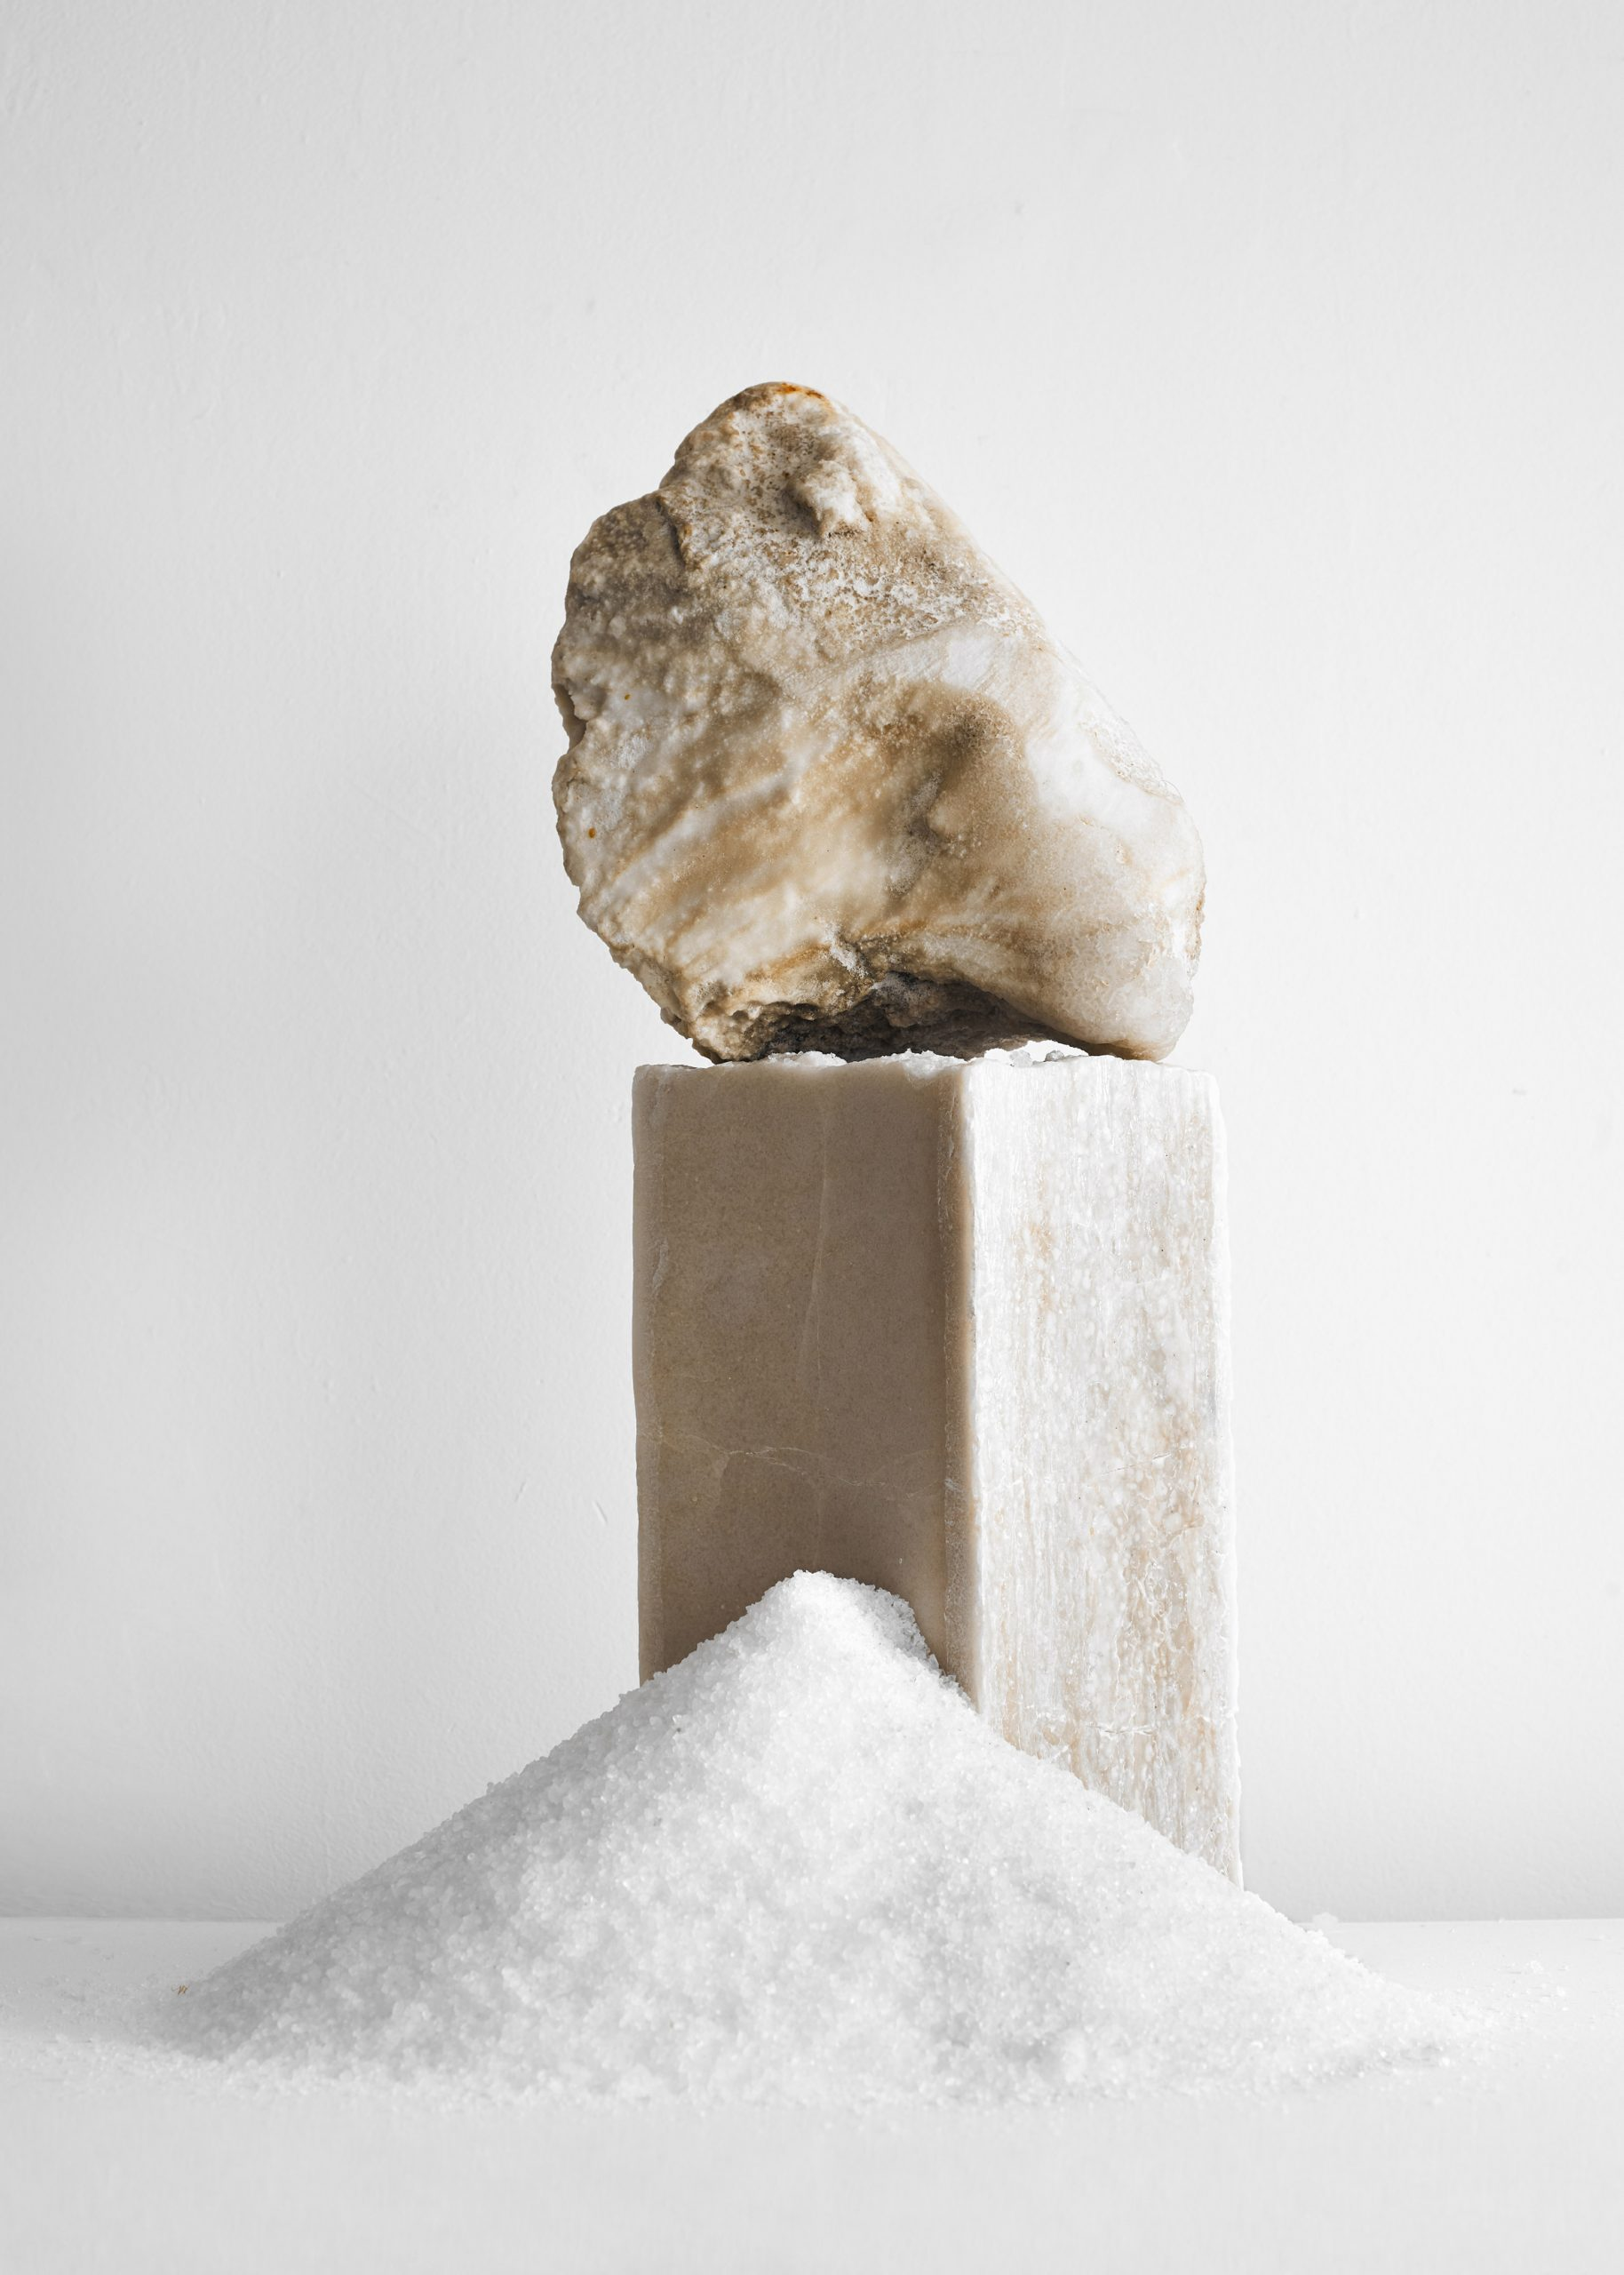 Salt used to create building blocks